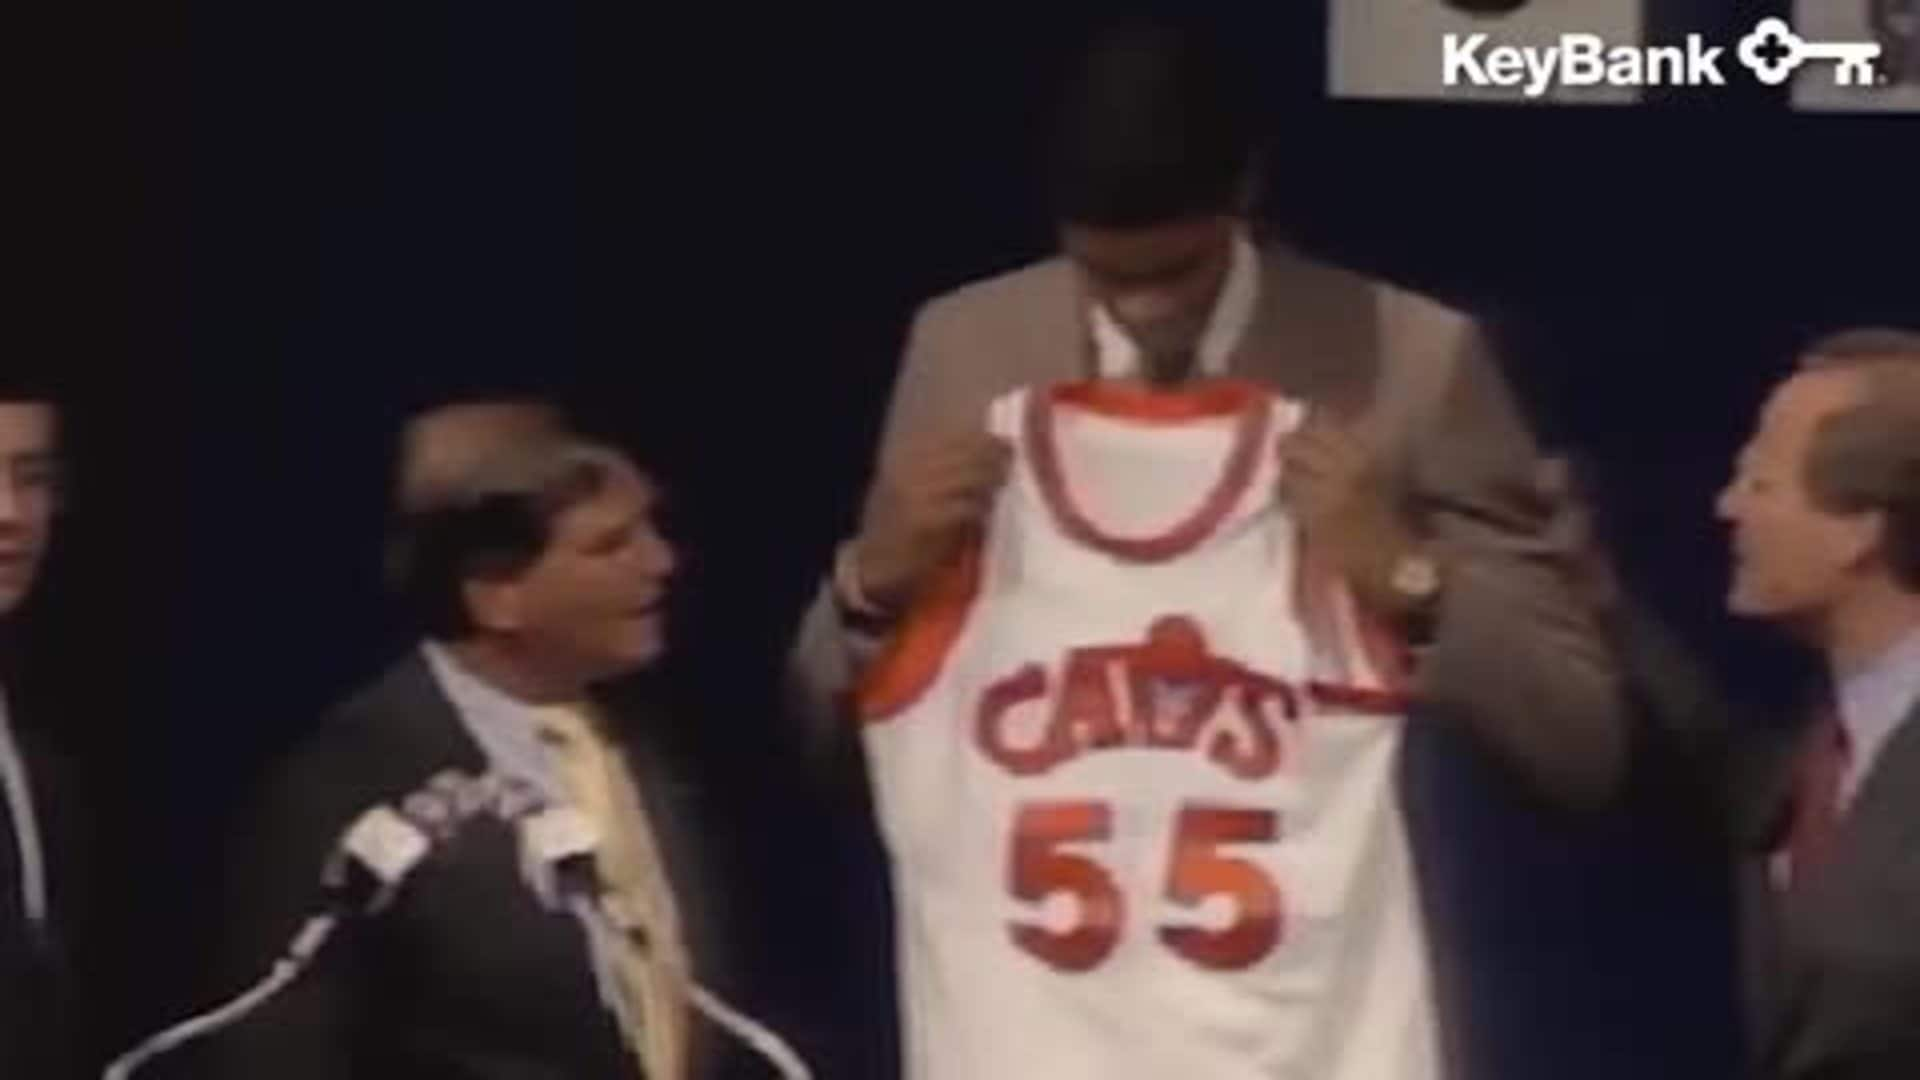 KeyBank Key Moment: Cavs Draft Daugherty & Price